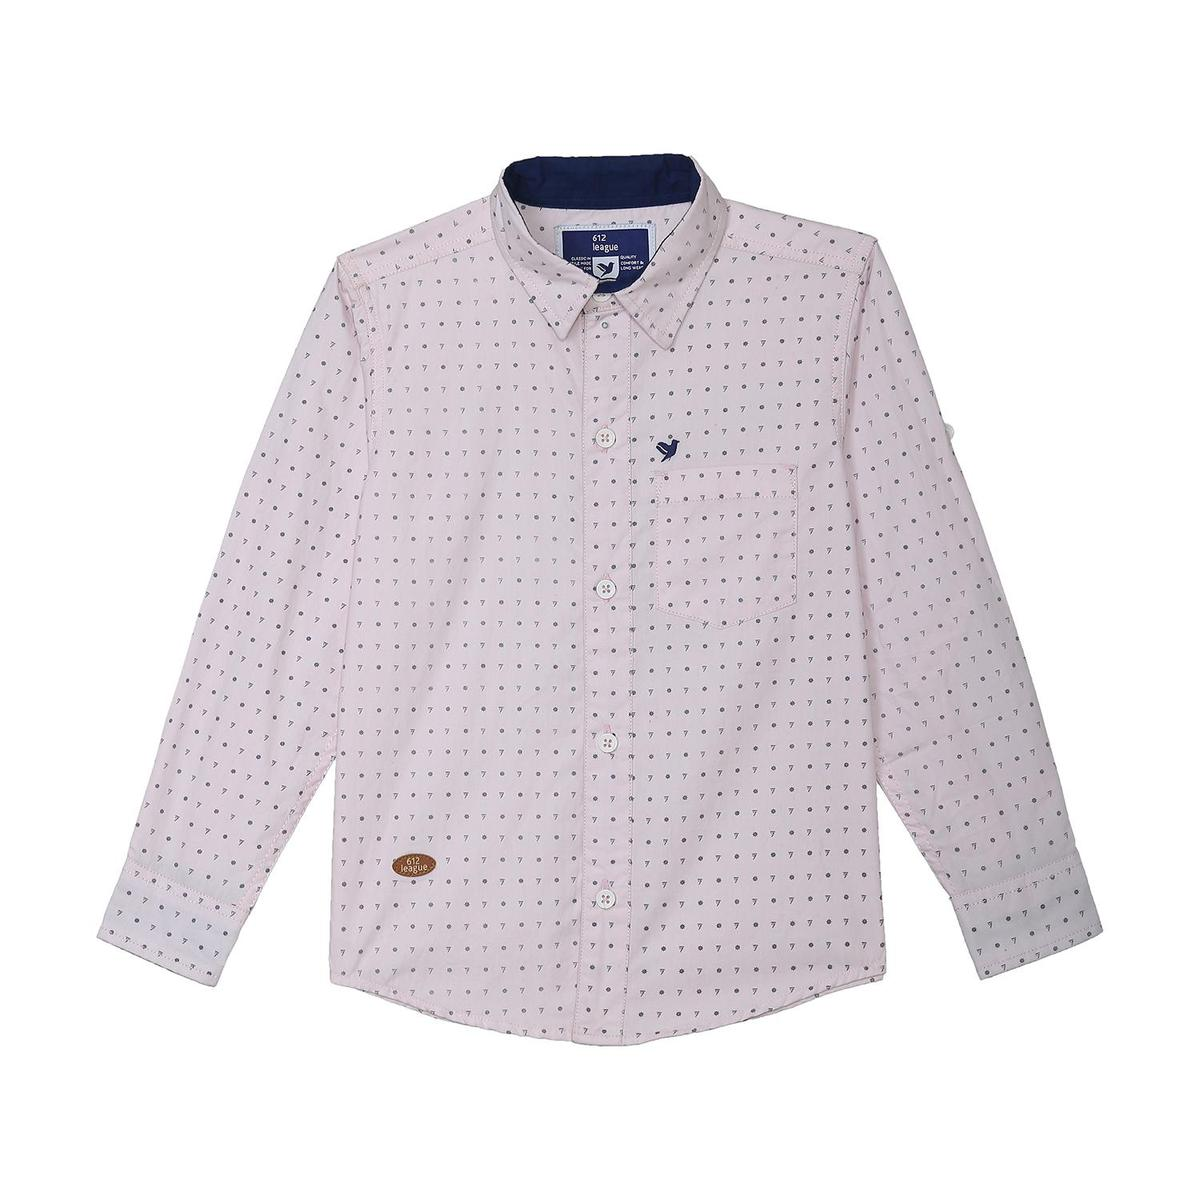 612 League - Boy's Light Pink Colored Woven Printed Shirt